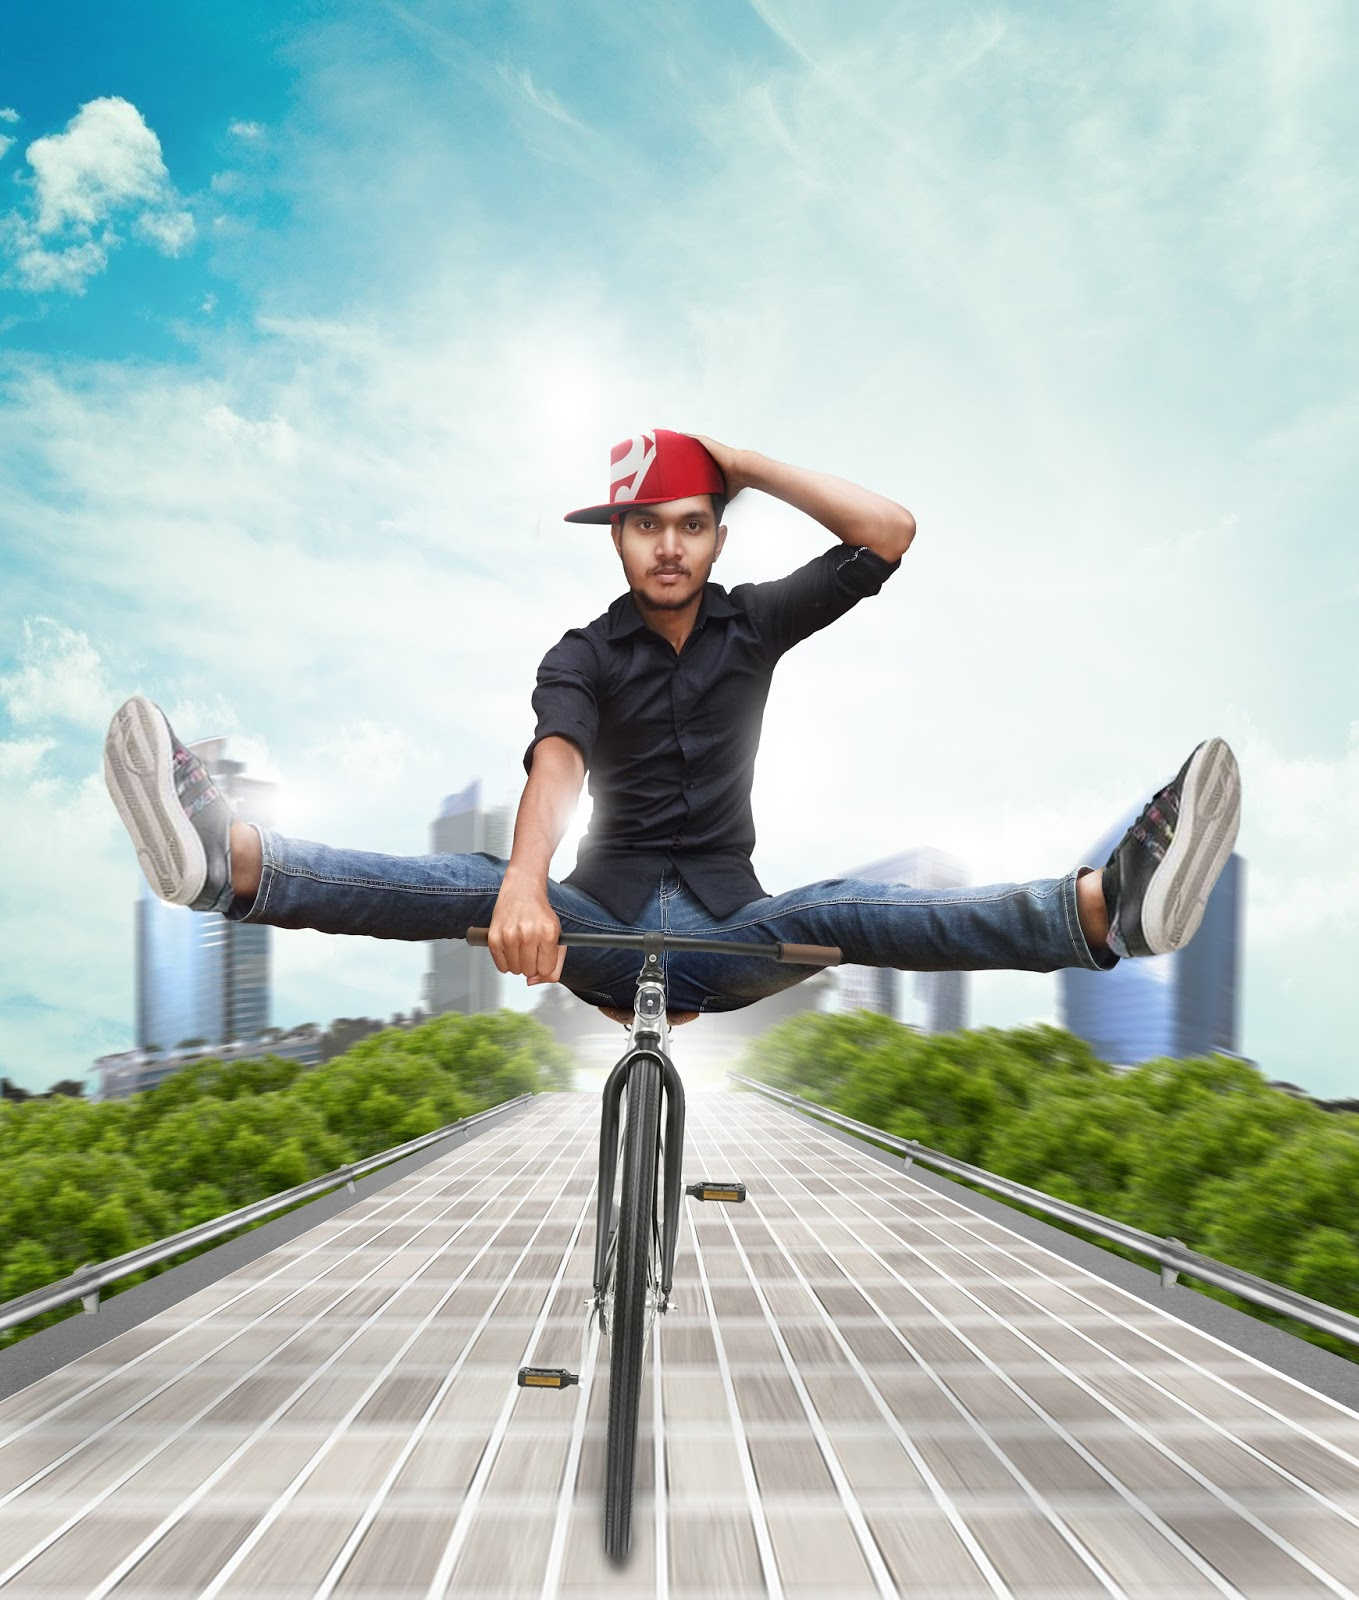 fun bicycle ride photo manipulation tutorials - creative photoshop